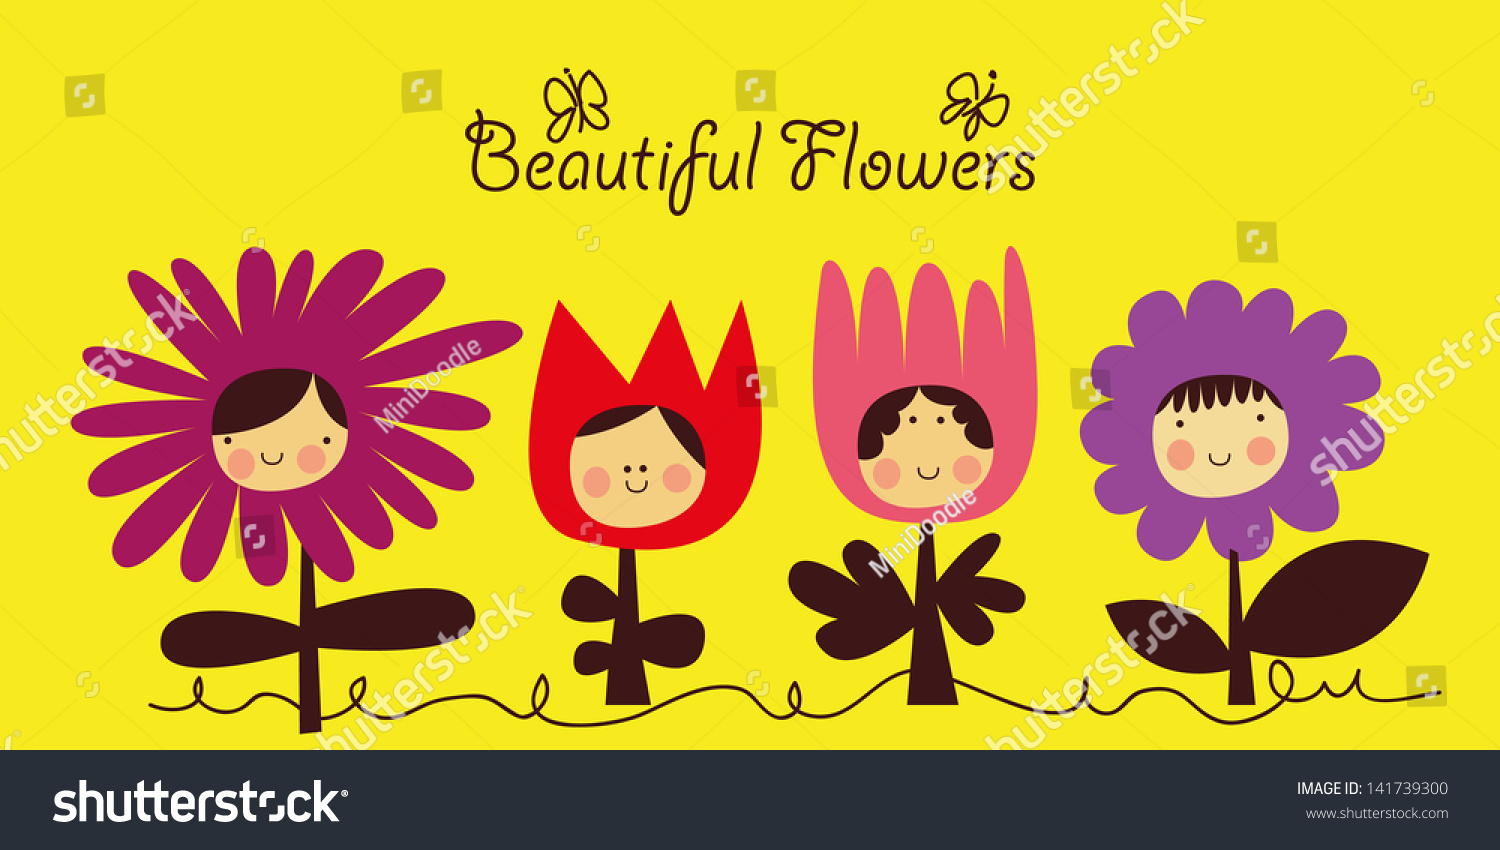 Cartoon Flowers With Funny Facesvector